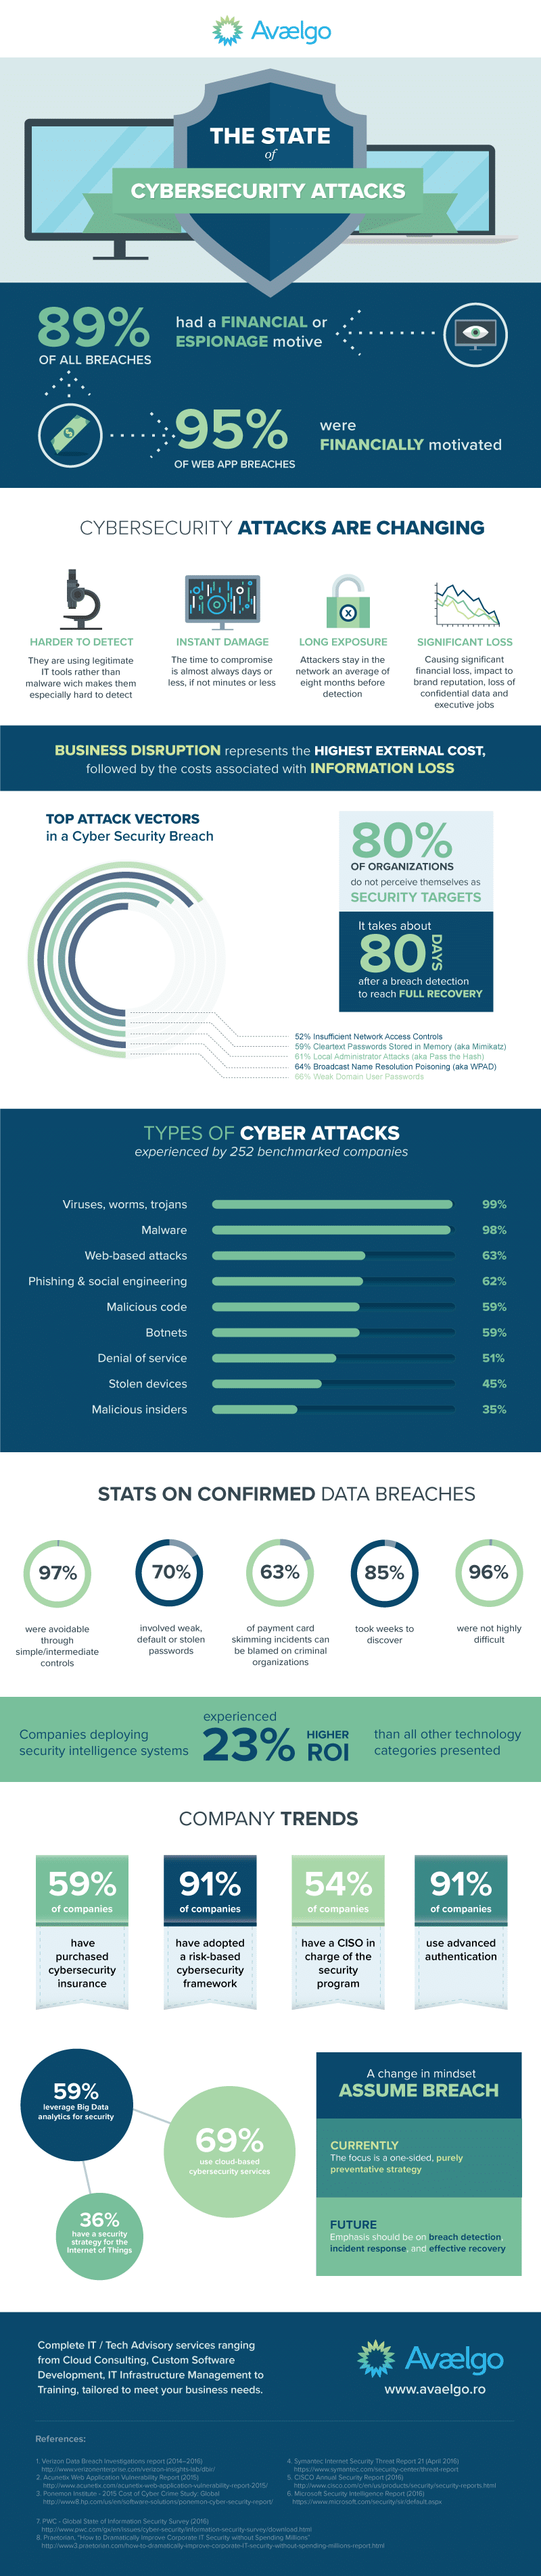 Cybersecurity Infographic Avaelgo